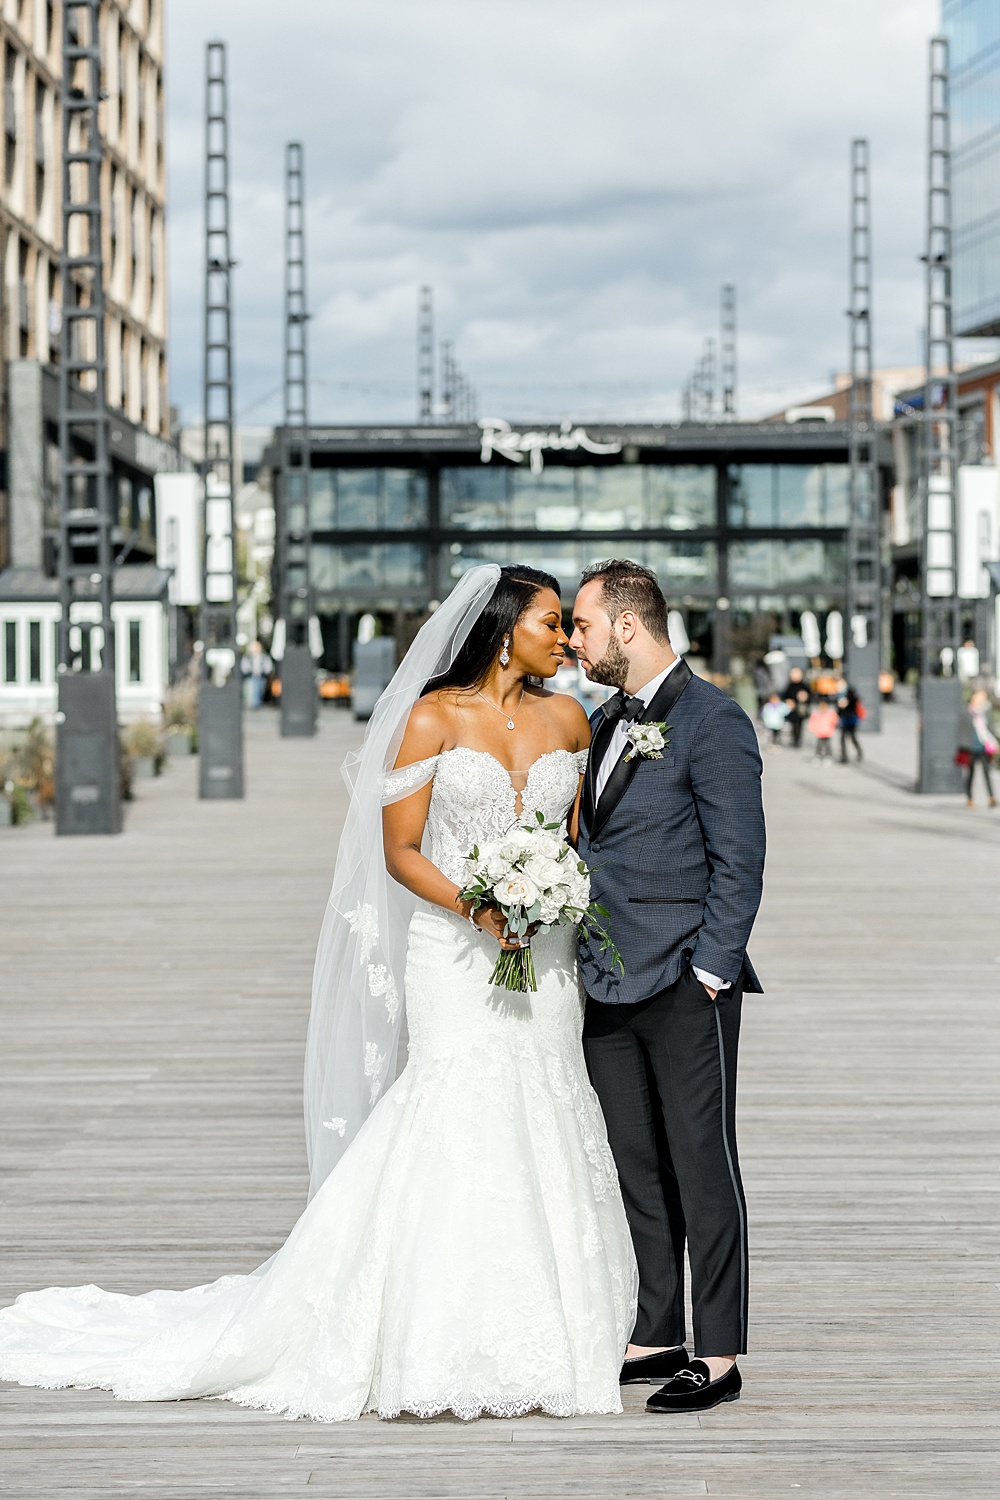 The Wharf DC, Event planning by Bright Occasions, Photography by Iris Mannings